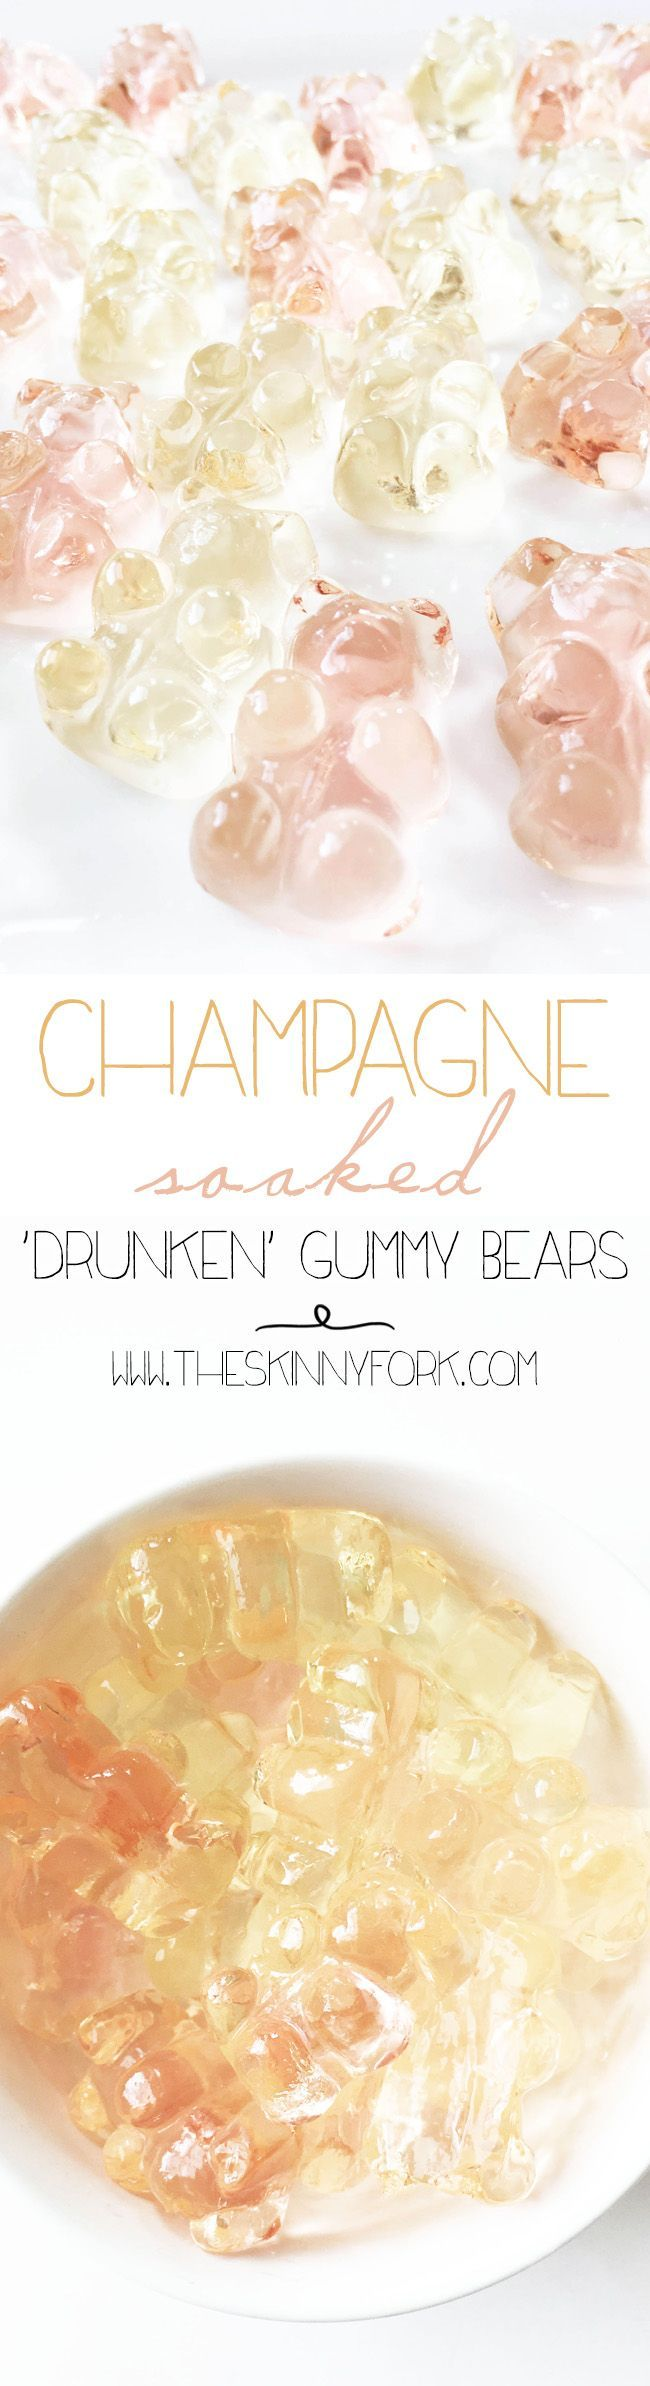 Champagne Soaked 'Drunken' Gummy Bears - Yummy bears that are full of champagne goodness! Happy New Year!